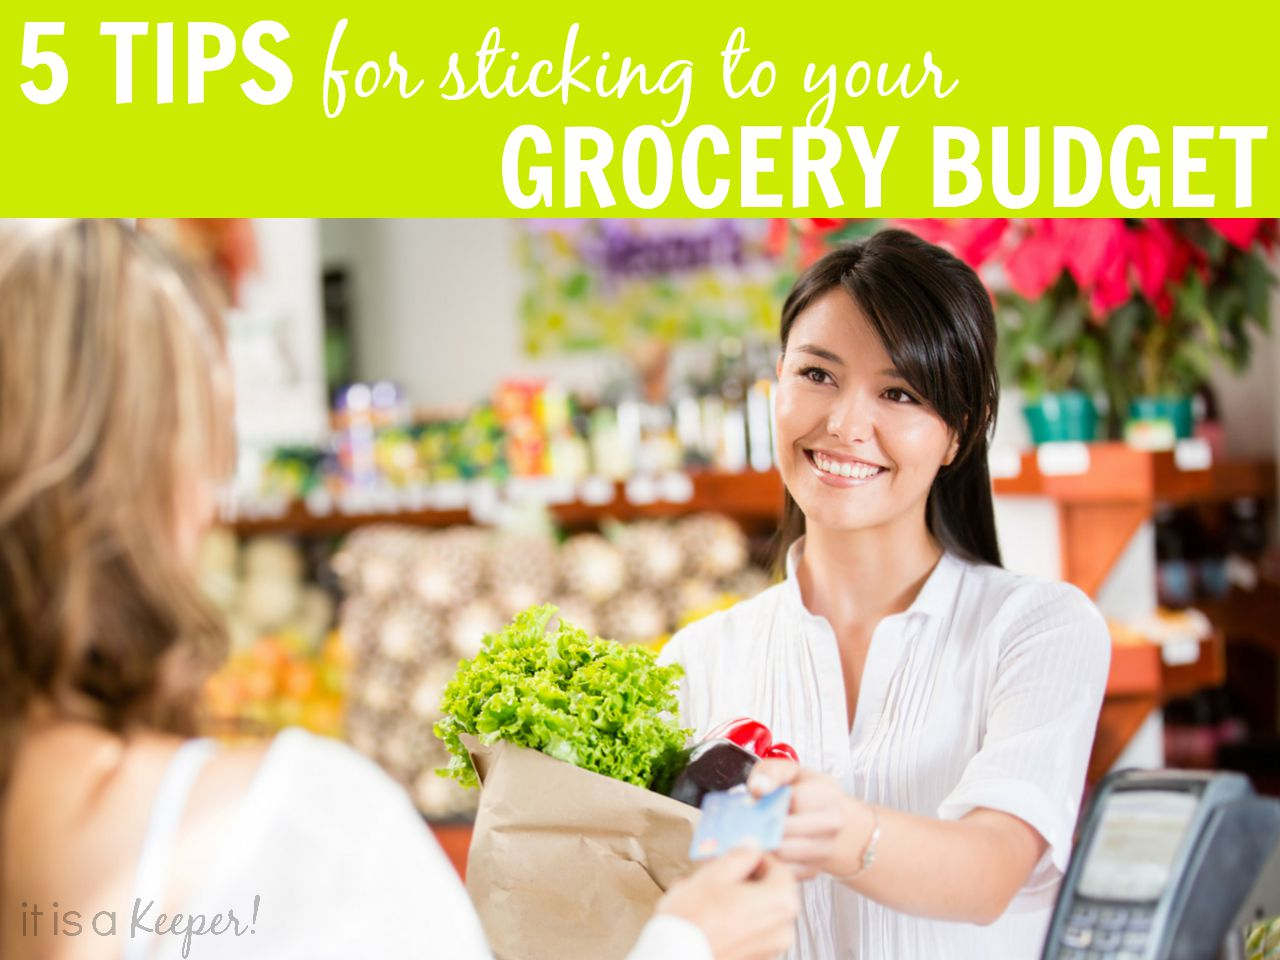 5 Tips for Sticking to Your Grocery Budget